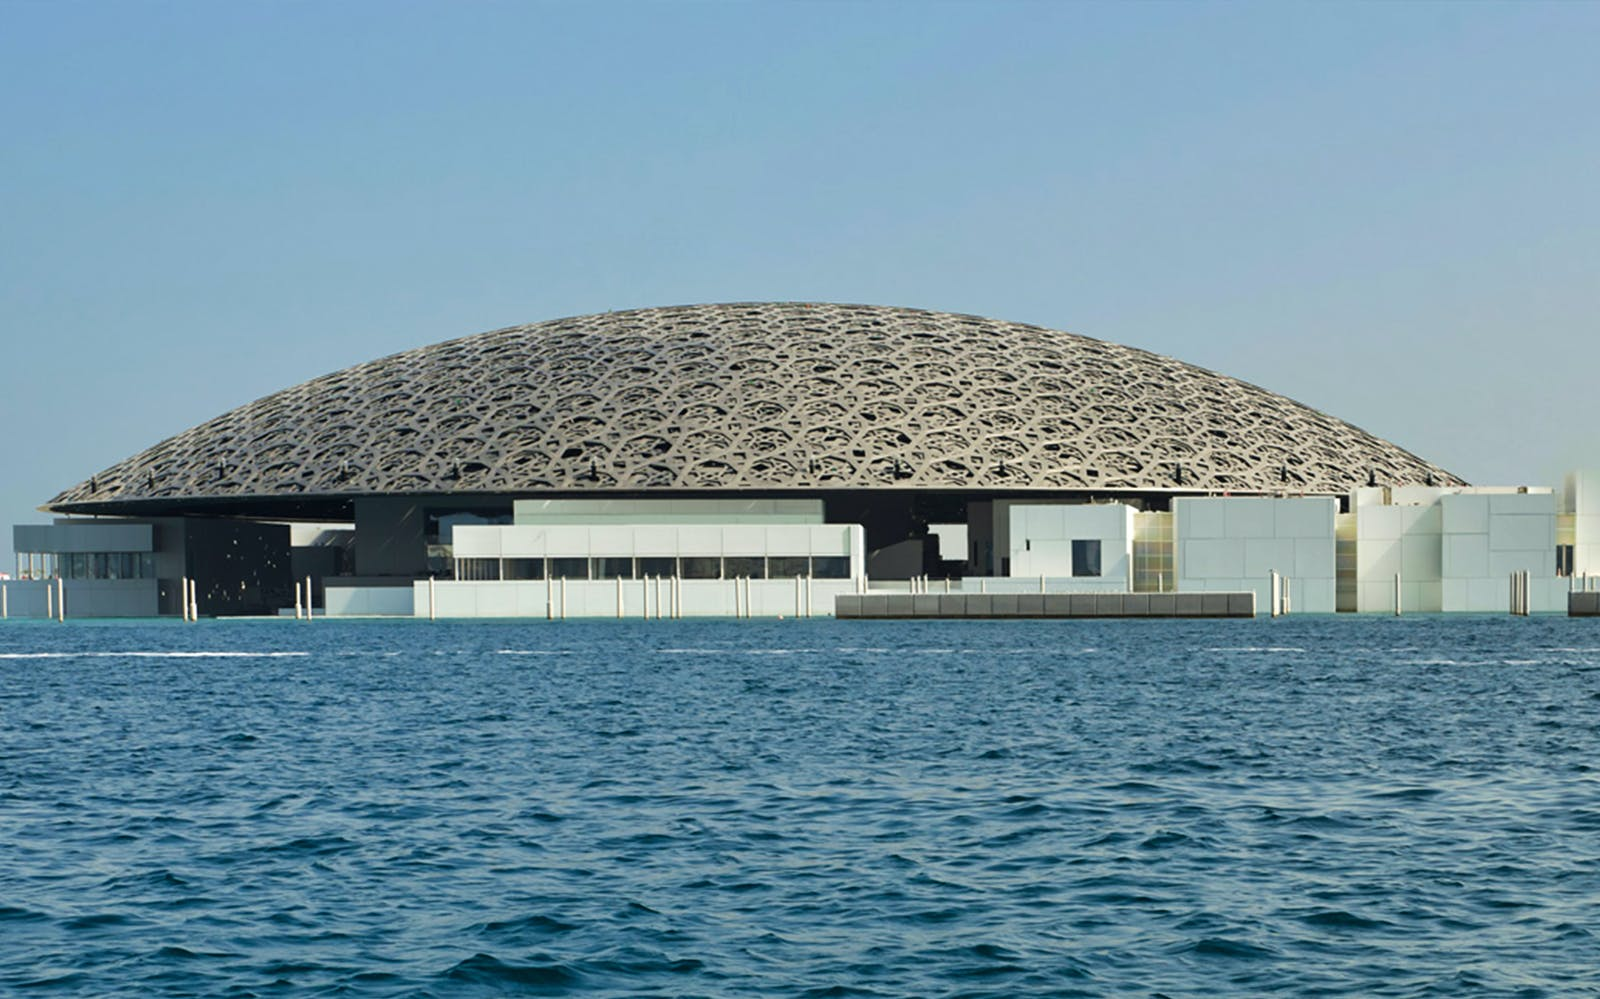 abu dhabi city tour + louvre museum from abu dhabi-4